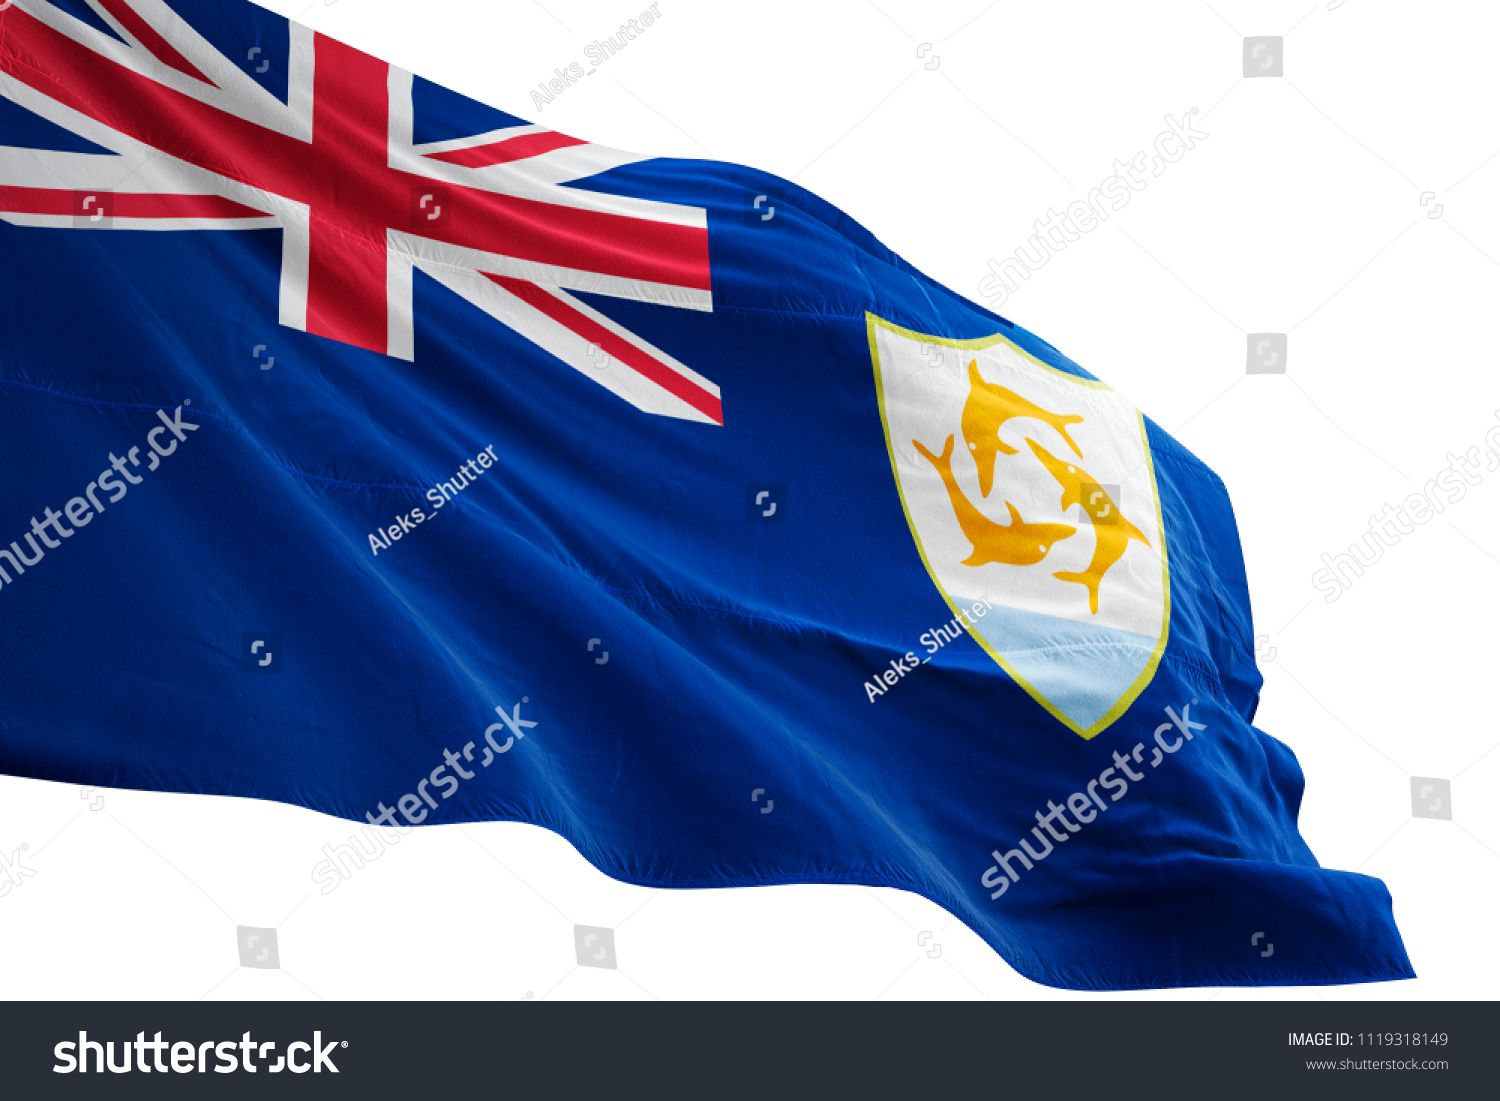 Anguilla National Flag Waving In The Blue Sky Realistic 3d Illustration Isolated On White Background Ad Aff Wa In 2020 Baby Wallpaper Boy Wallpaper National Flag